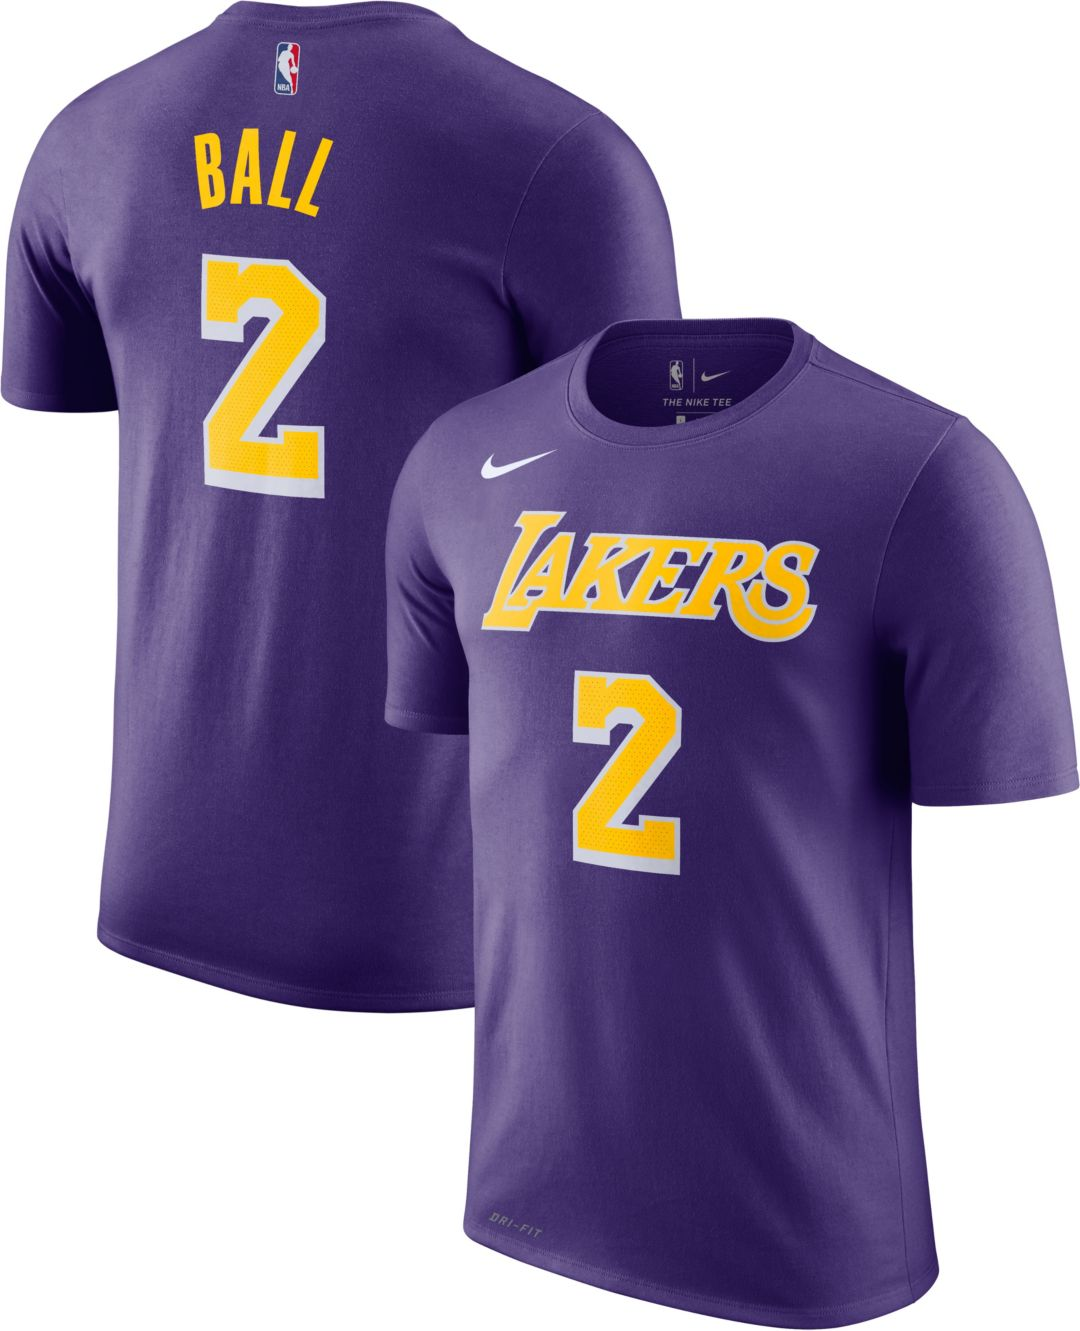 cce20a8f94a Nike Youth Los Angeles Lakers Lonzo Ball #2 Dri-FIT Purple T-Shirt ...